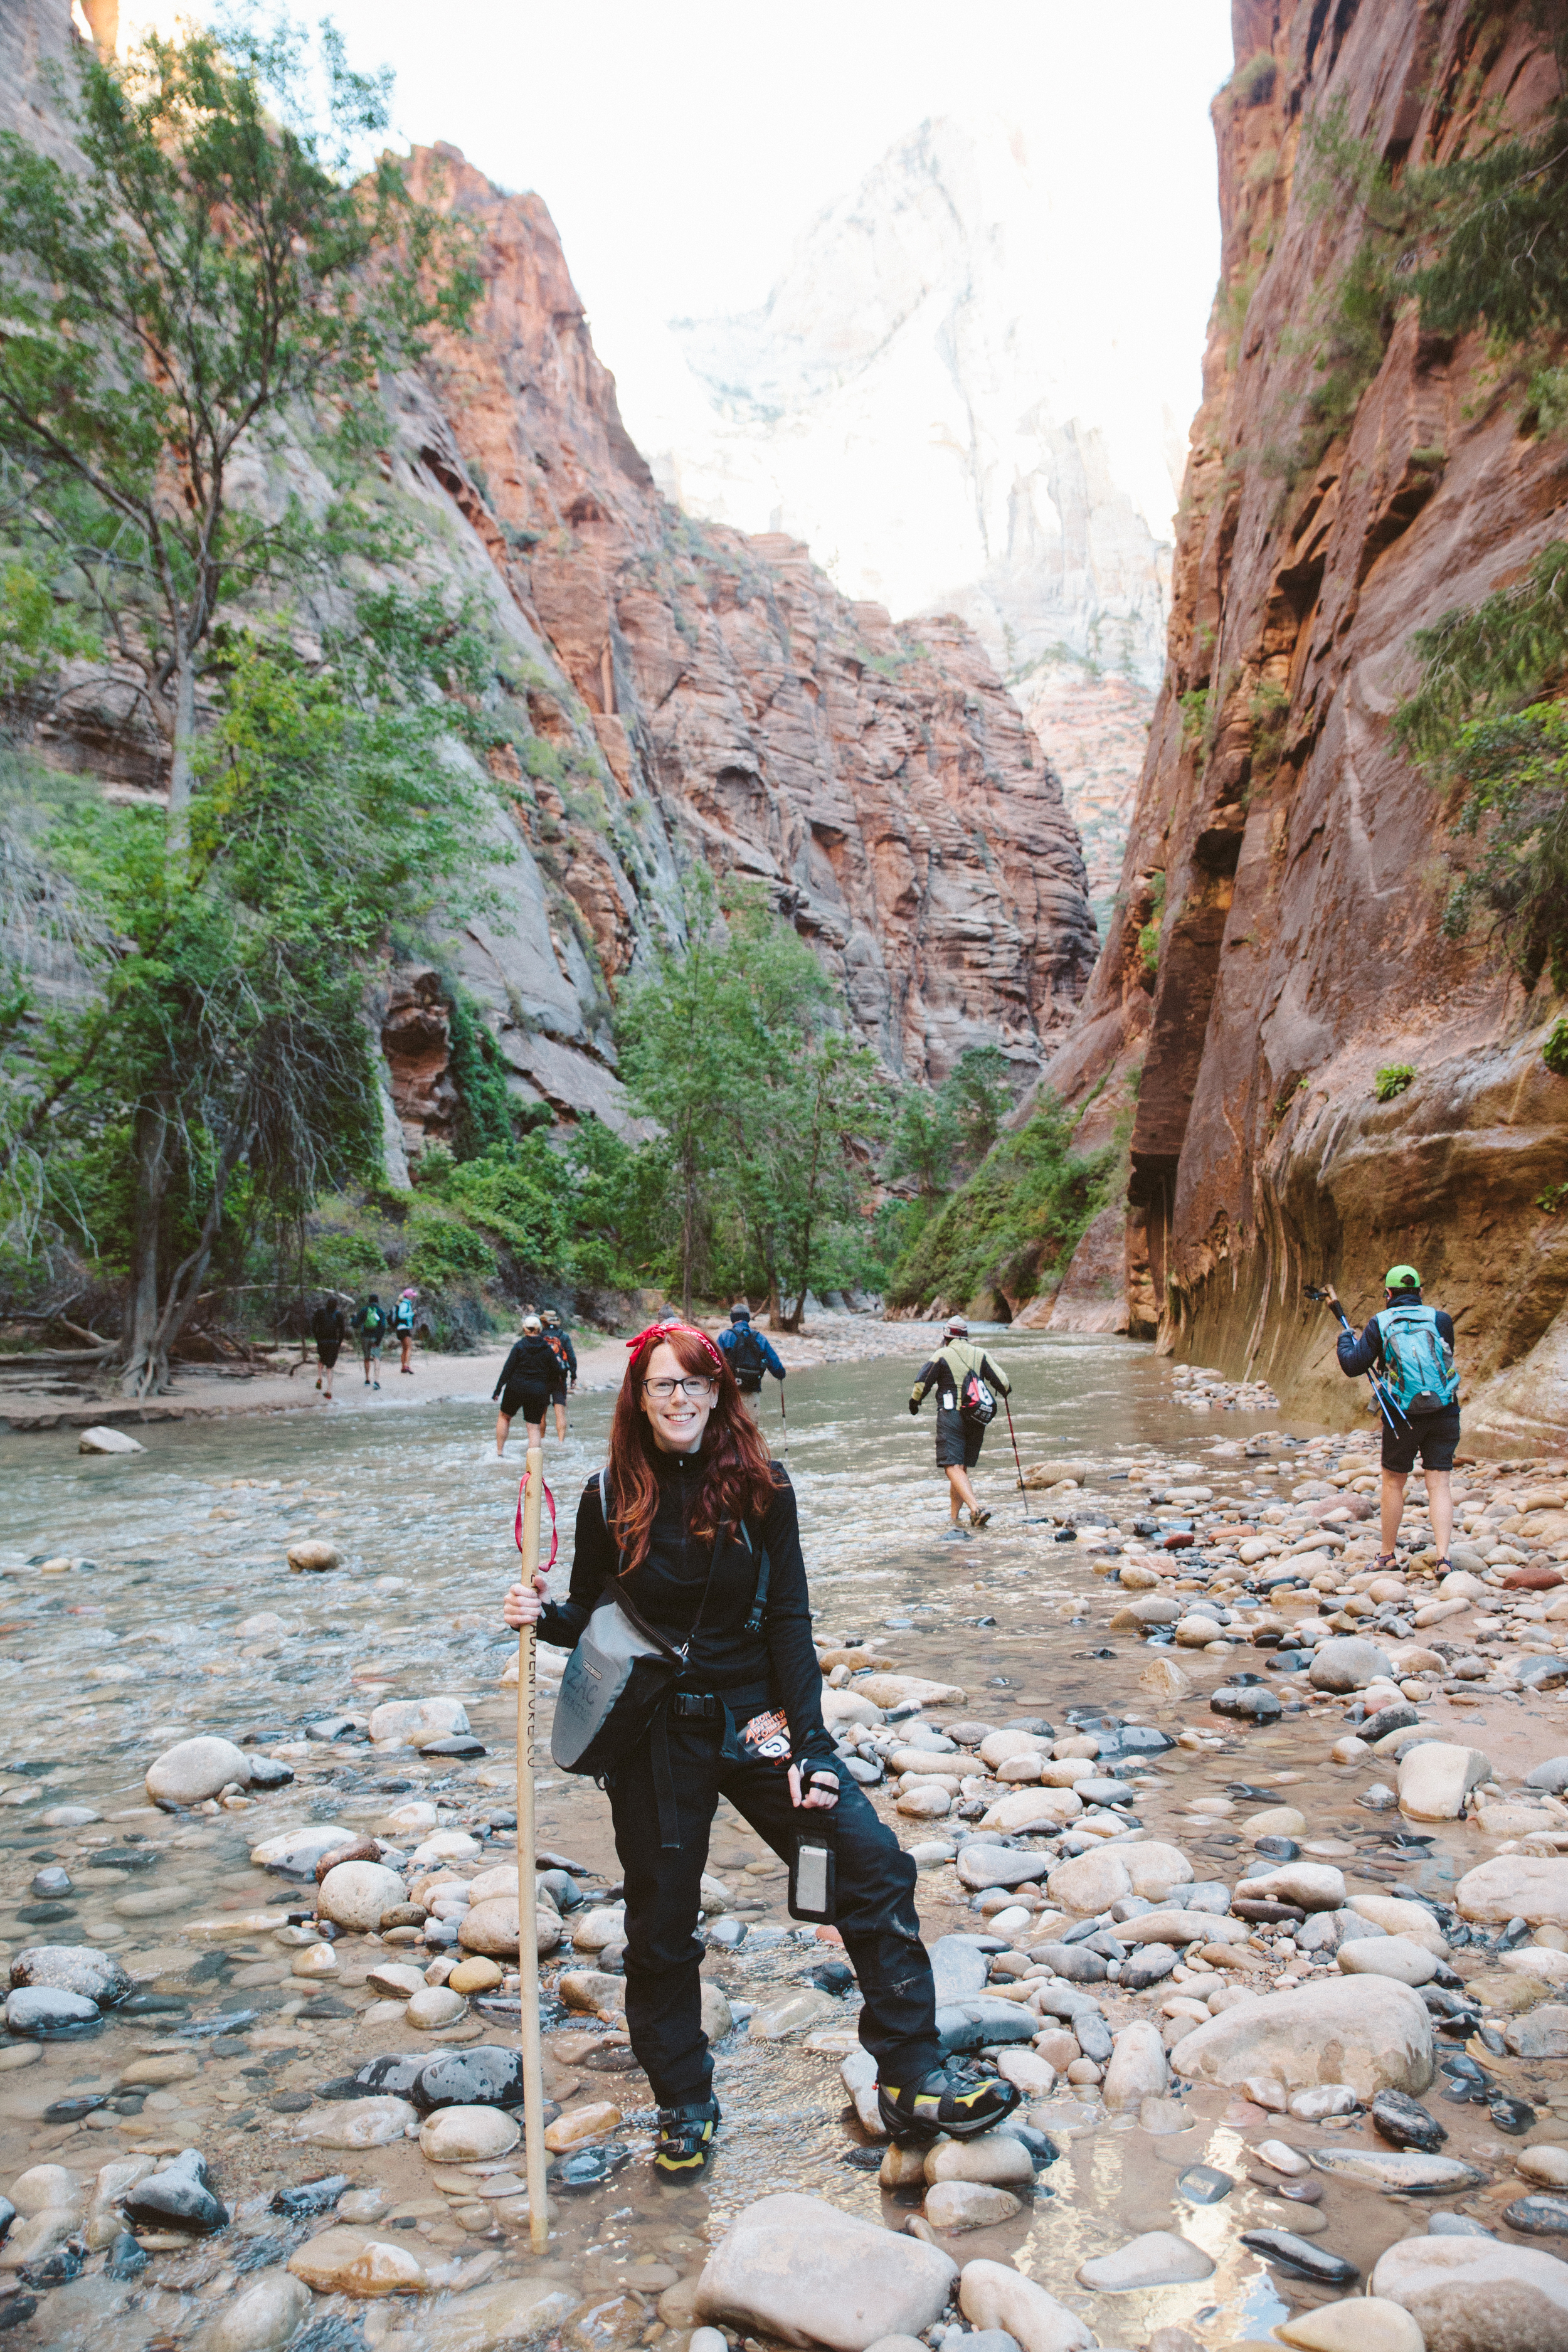 Hiking The Narrows in Zion National Park, UT in 2014.  The grey water-tight camera bag holds my Canon 5D Mark ii with Tamron 24-70mm f/2.8 lens.  Thank goodness for that bag because the water height was over my head a few times during the hike and the bag was submerged!